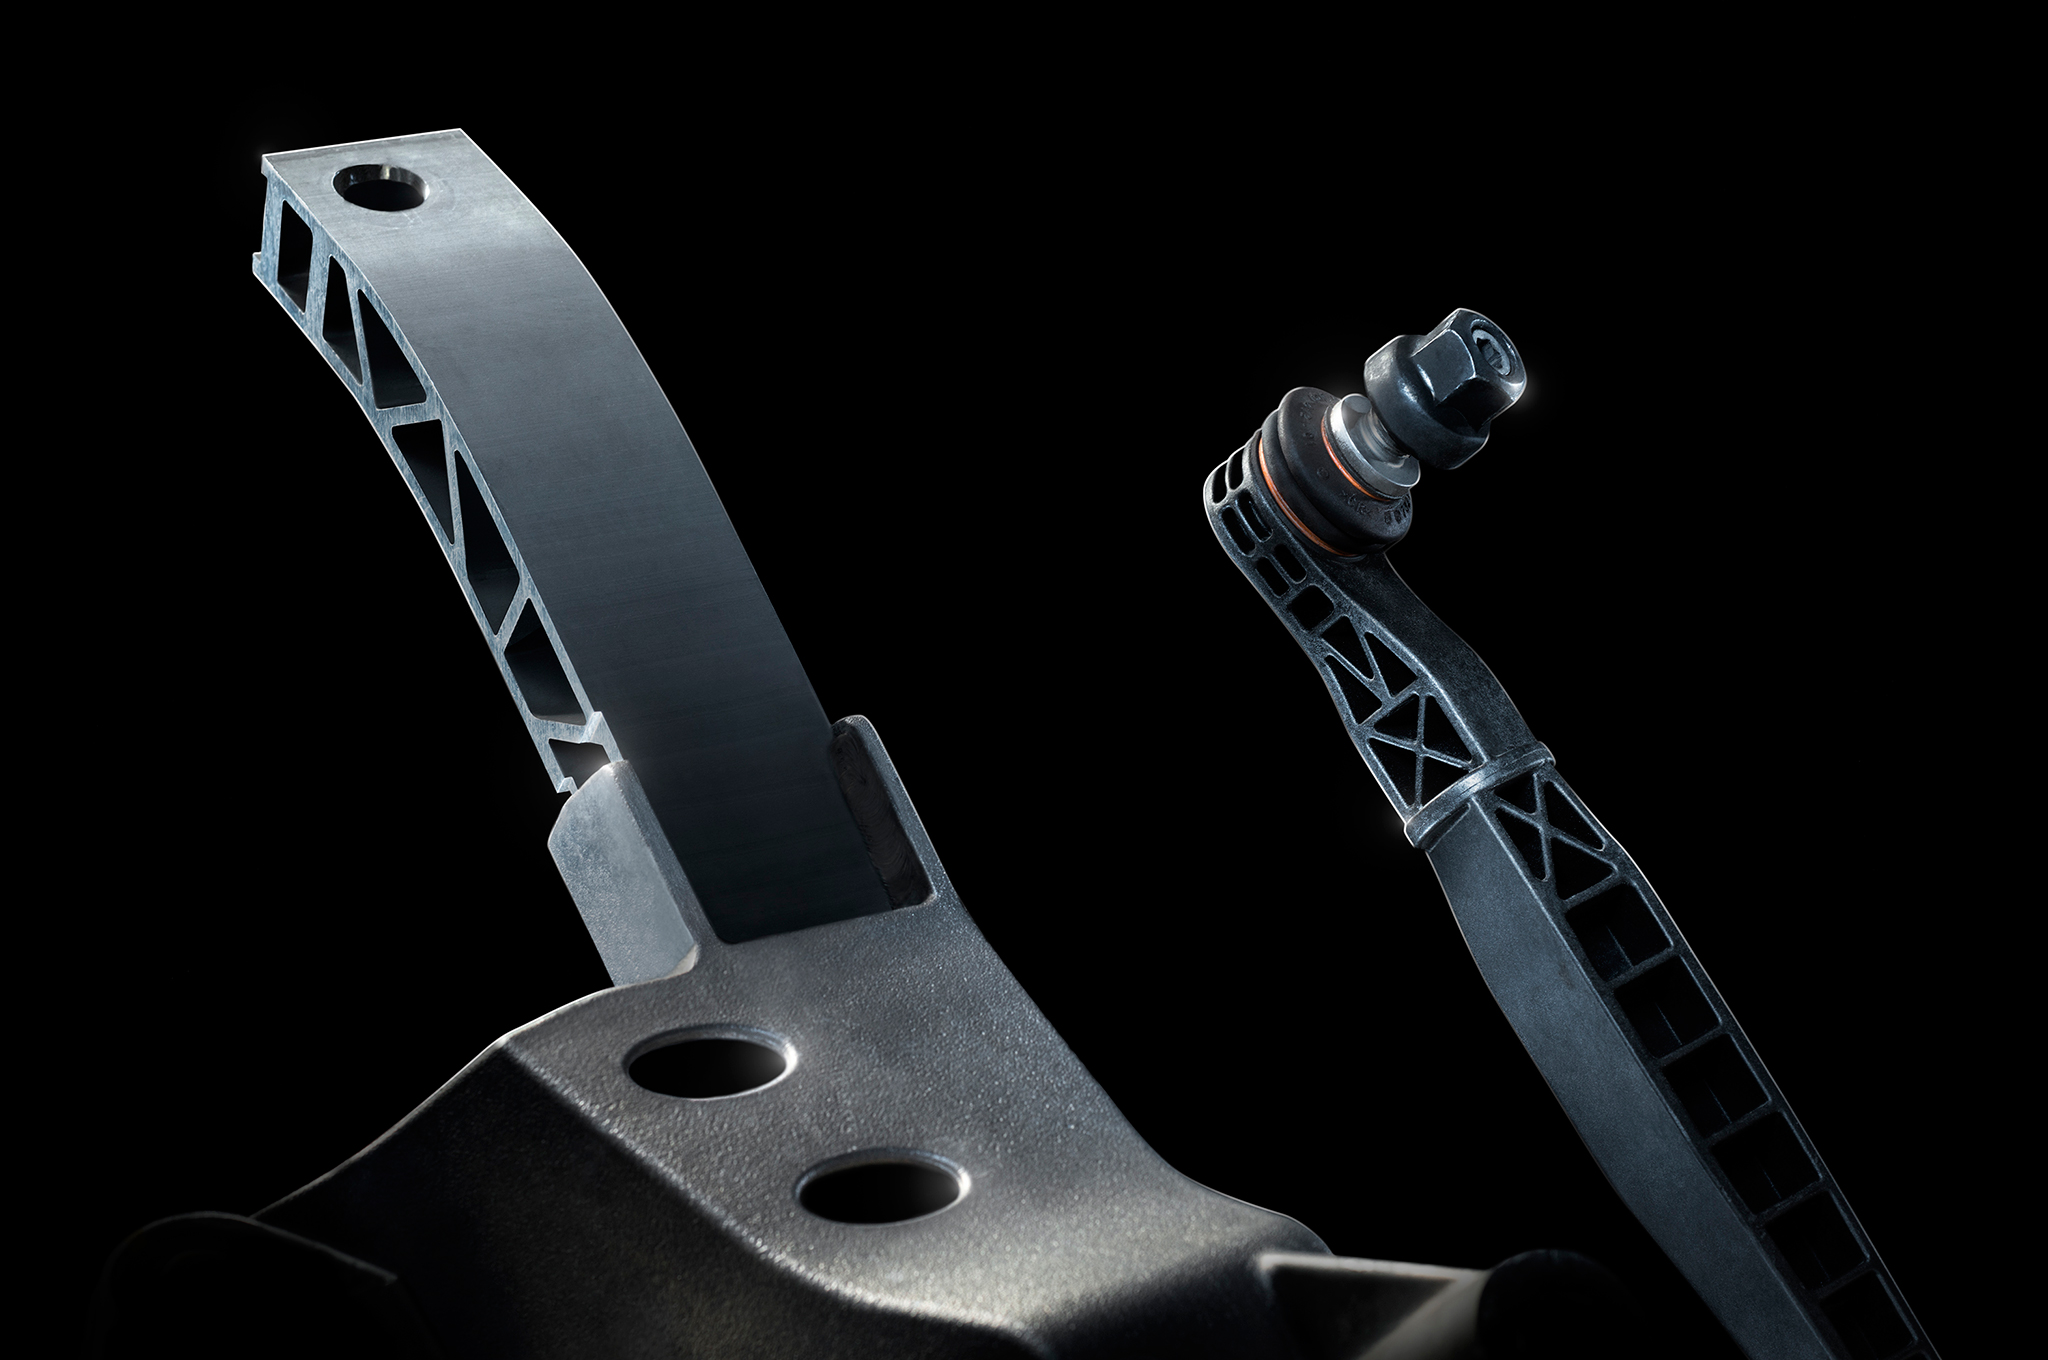 Greater use of aluminum suspension components further contributes to the Camaro's weight loss – and they even honeycombed some of the suspension links for further savings. Overall, suspension weight is reduced by 26 pounds.